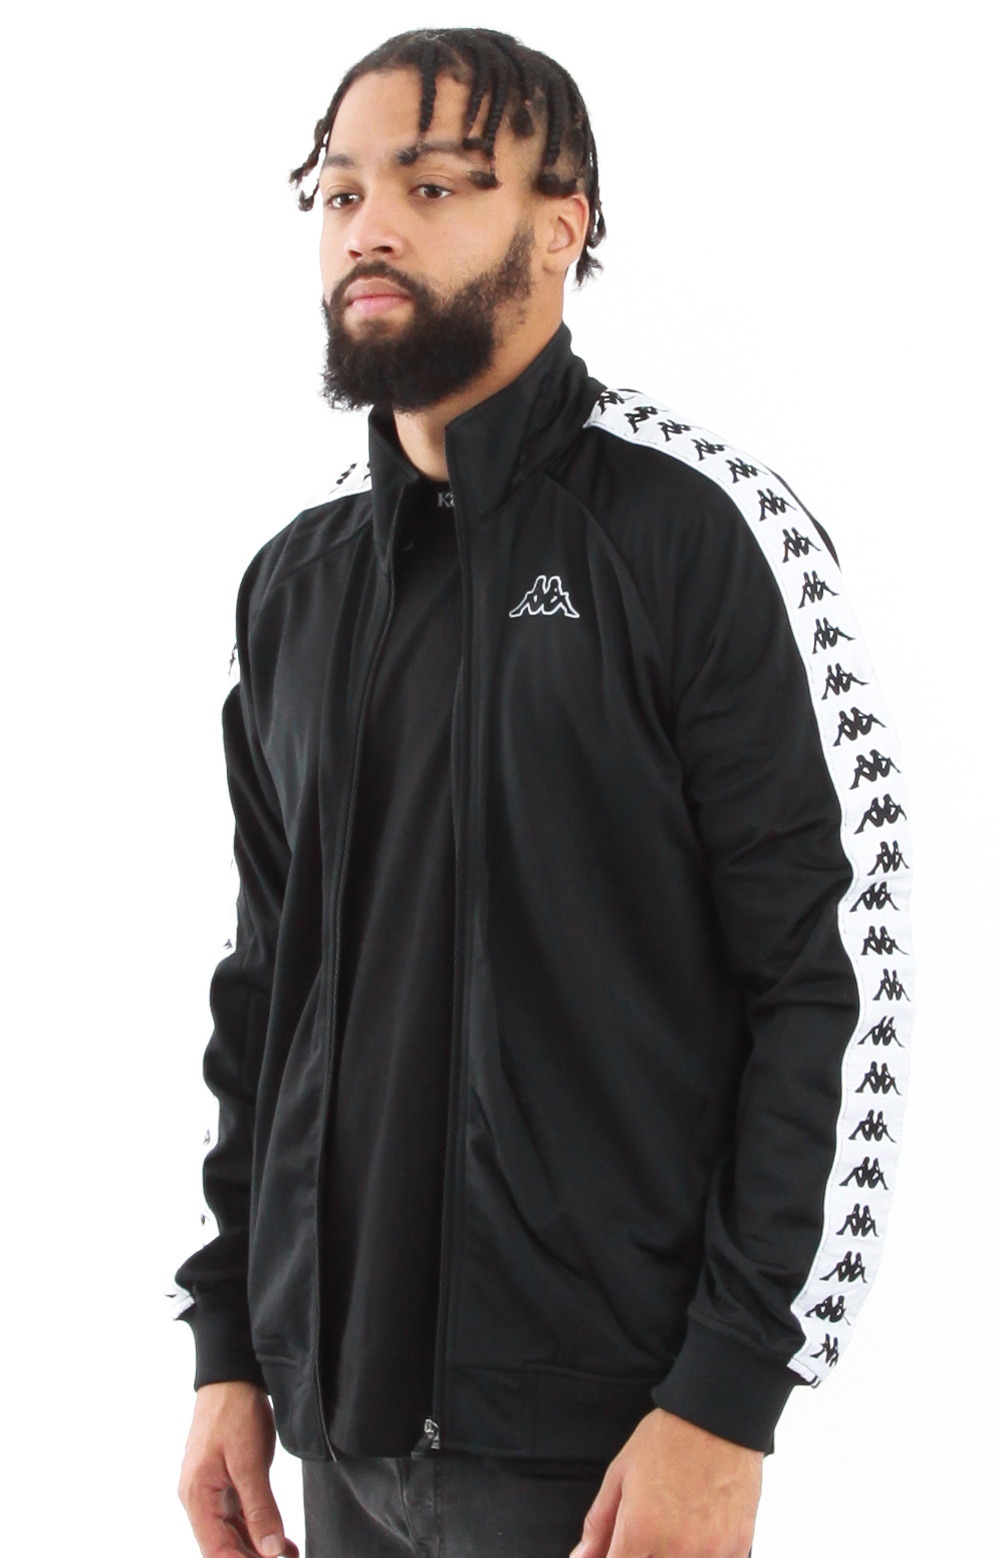 Kappa, 222 Banda Anniston Slim Track Jacket - Black/White